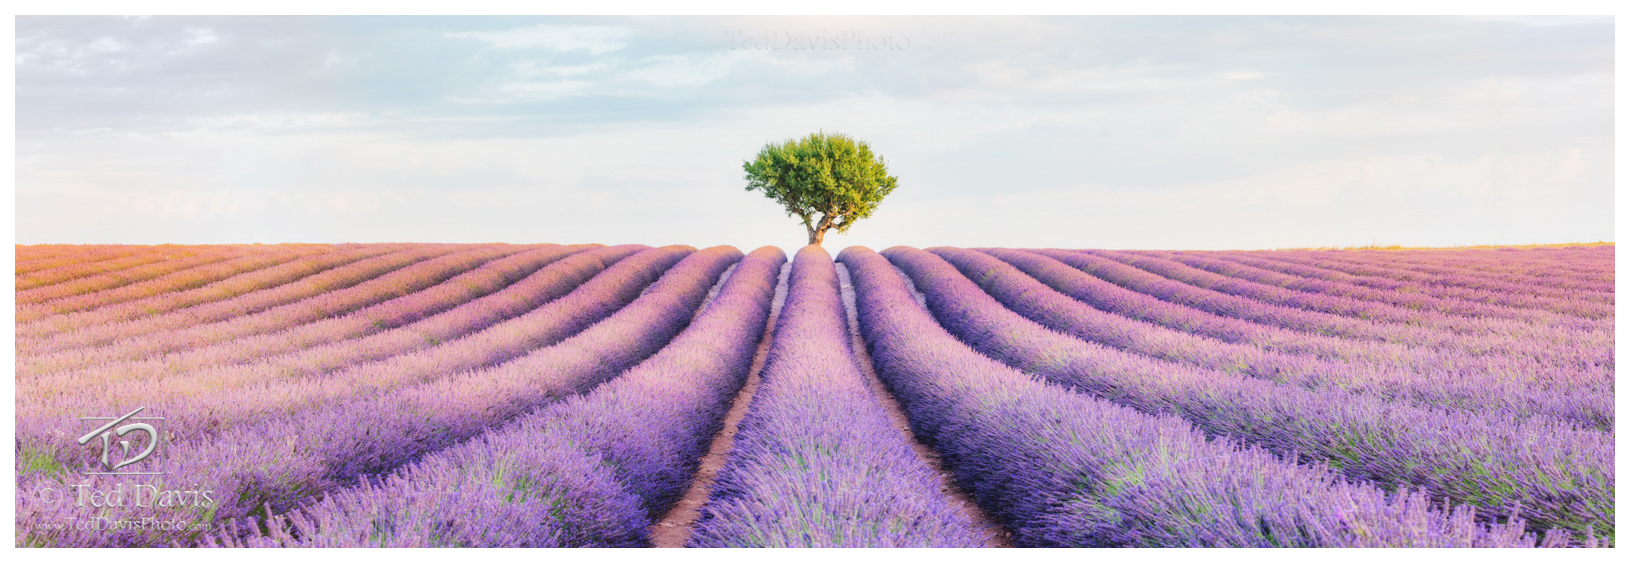 Lavender, glower, alight, provonce, france, shutter, timeless, moment, photo